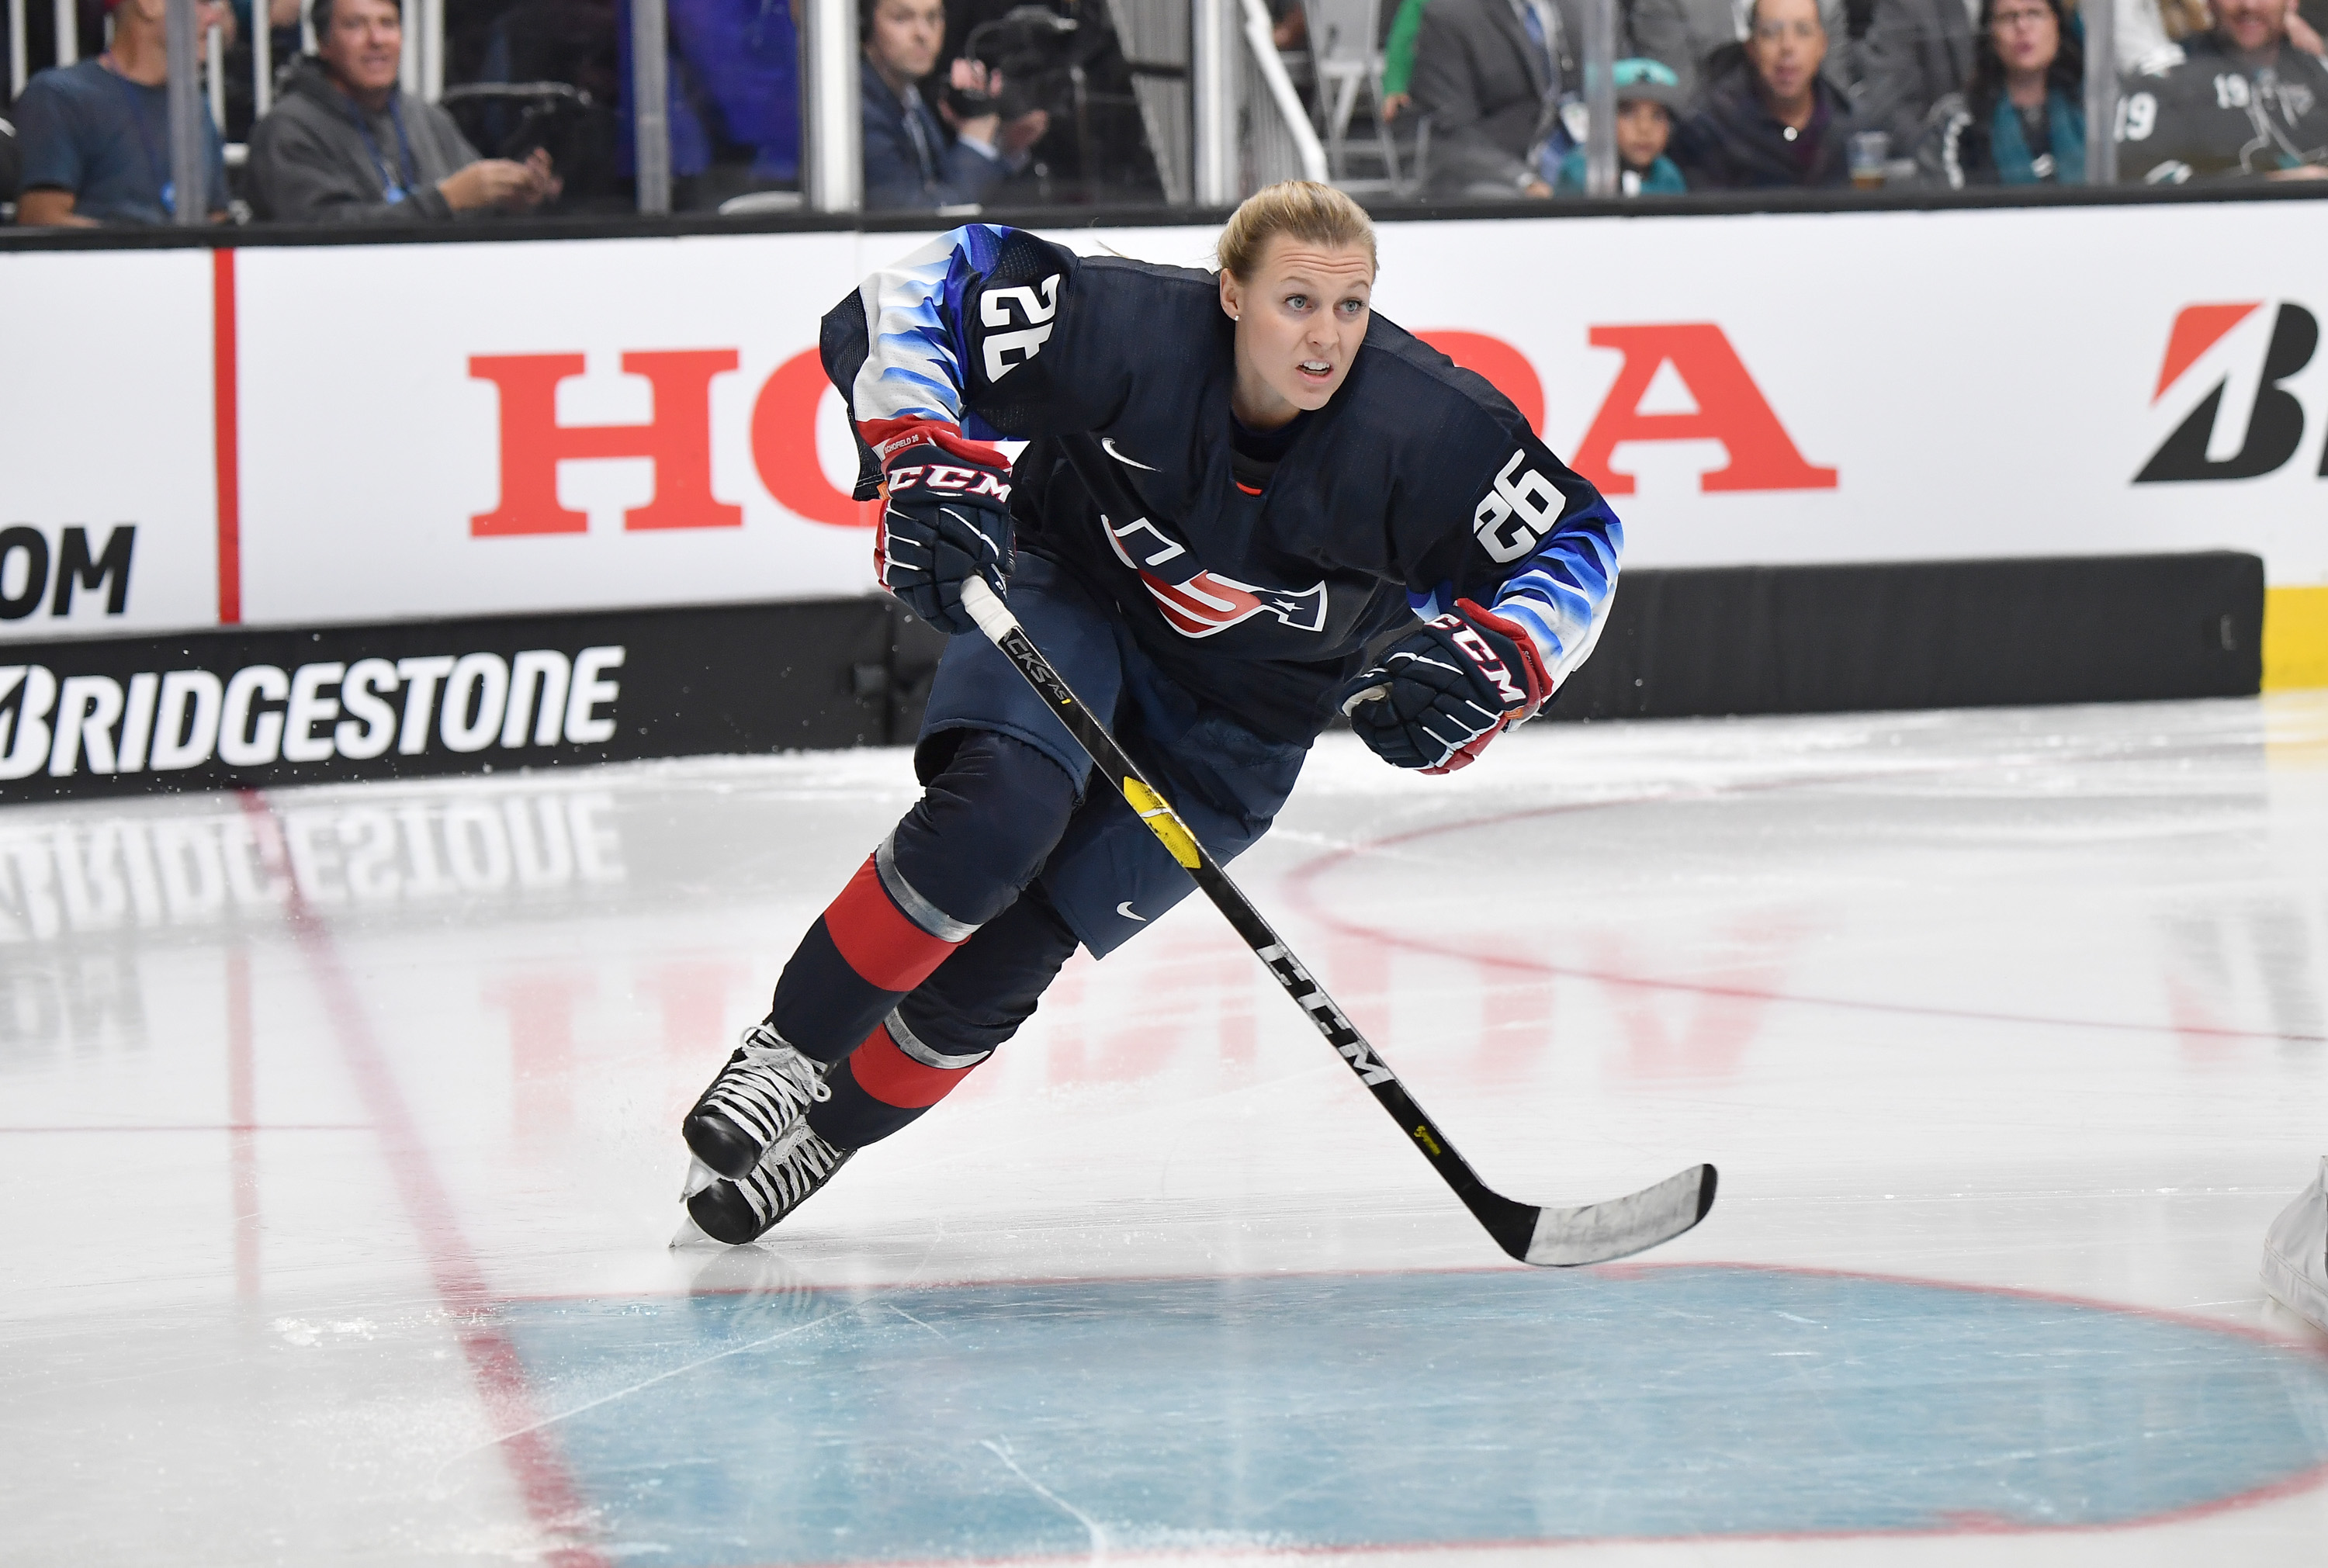 Kendall Coyne #26 of the U.S. Women's National hockey team skates prior to the Bridgestone NHL Fastest Skater during the 2019 SAP NHL All-Star Skills at SAP Center on January 25, 2019 in San Jose, California.  (Photo by Brandon Magnus/NHLI via Getty Images)